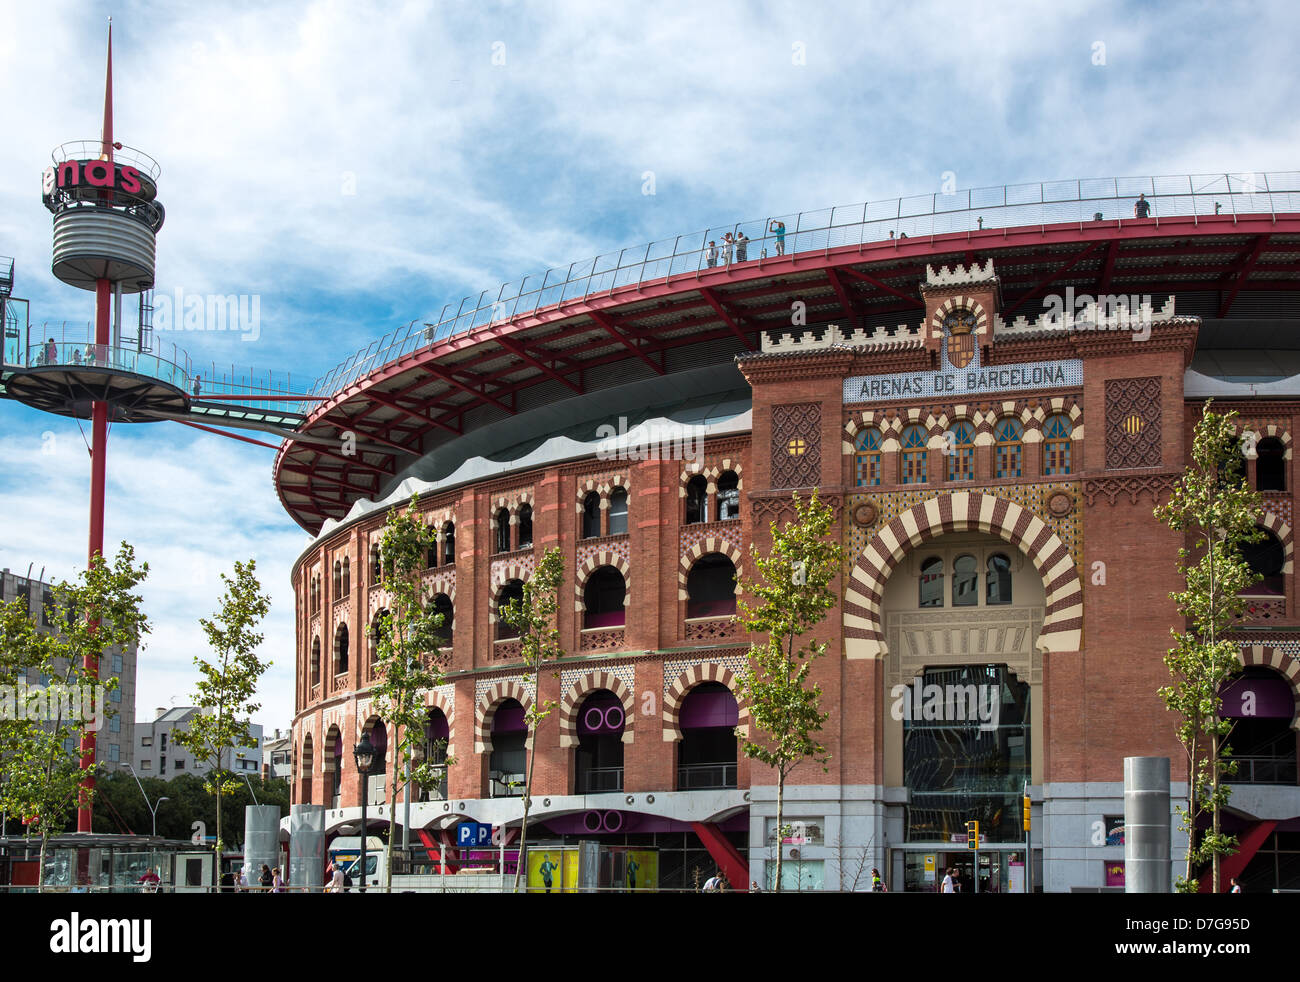 Spain Barcelona The Arenas An Ancient Plaza De Toros Bullring Stock Photo Alamy